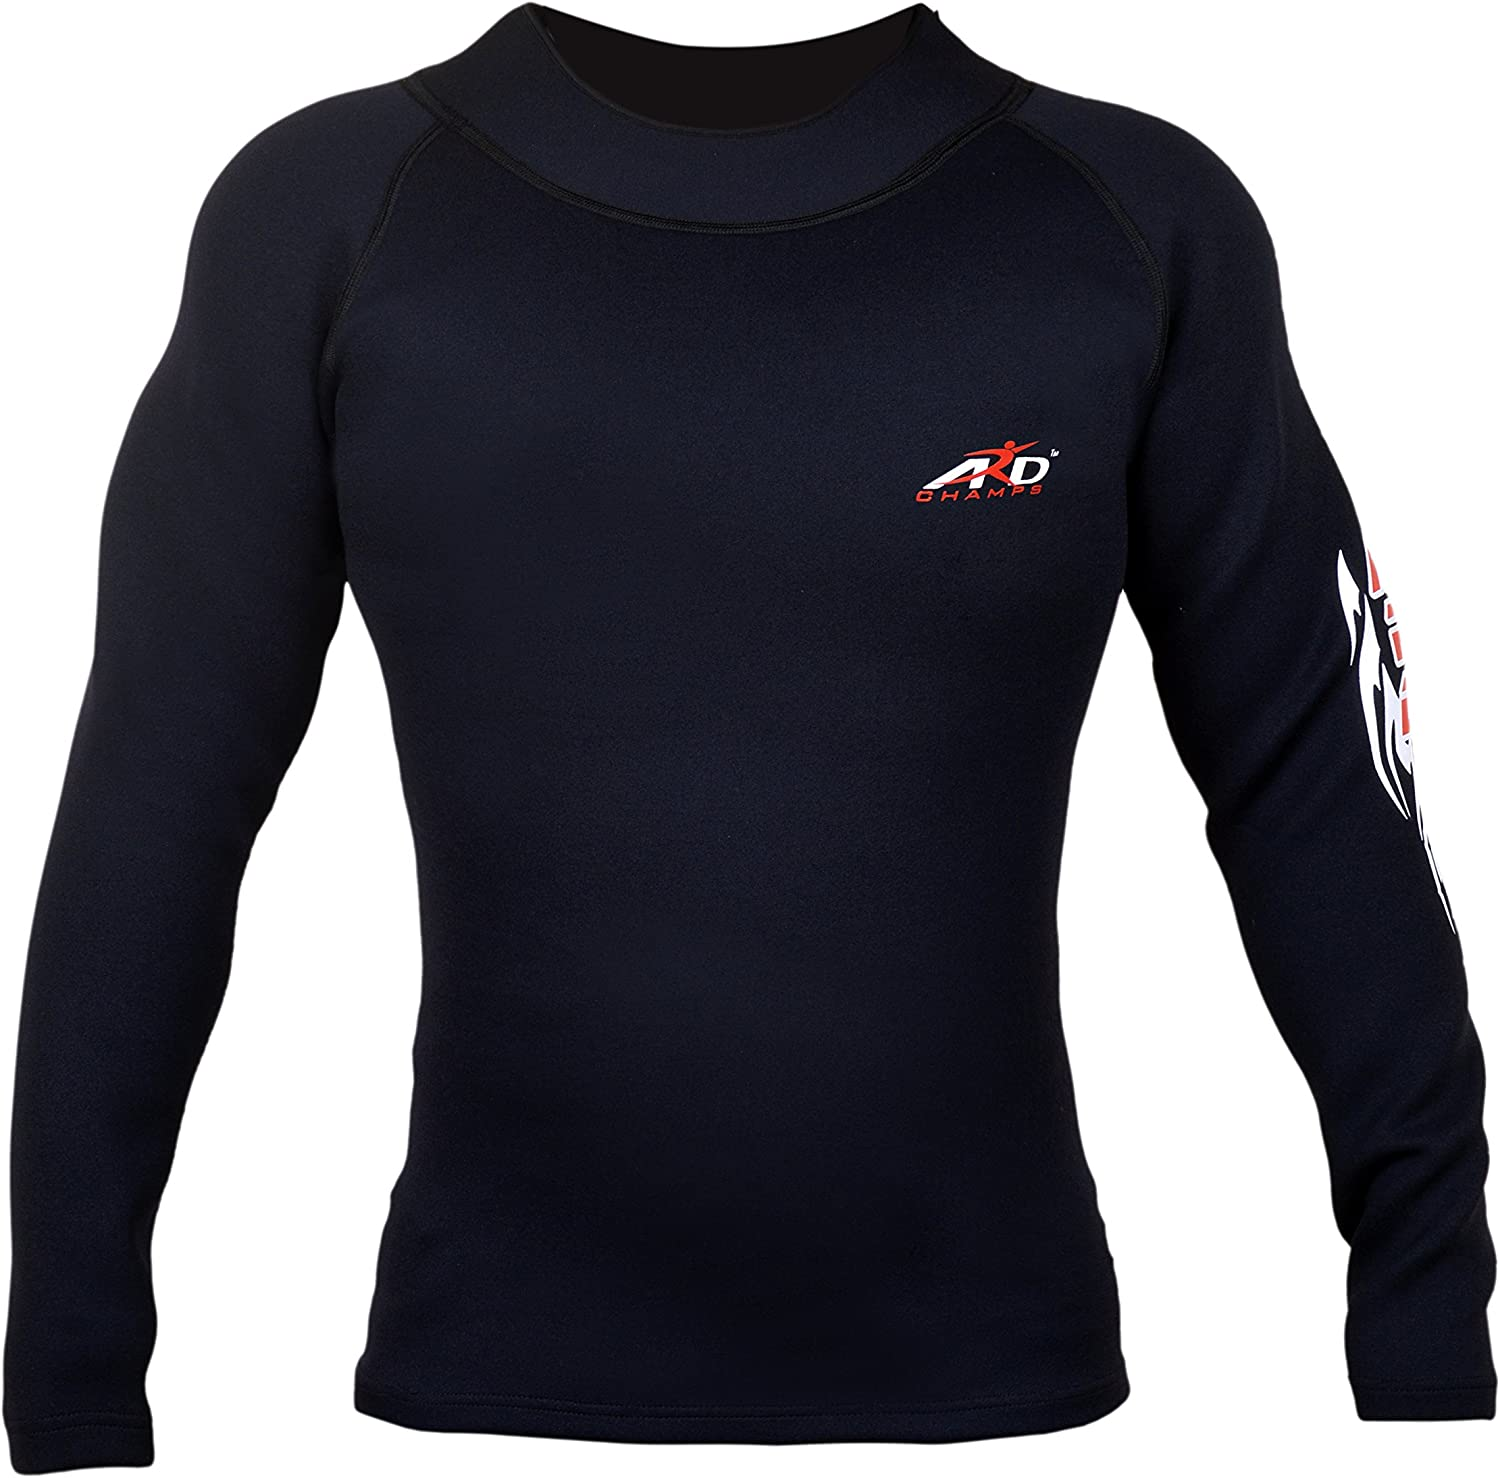 ARD Heavy Duty Neoprene Sweat Shirt Rash Guard Suana Suit Weight Loss MMA Men Top